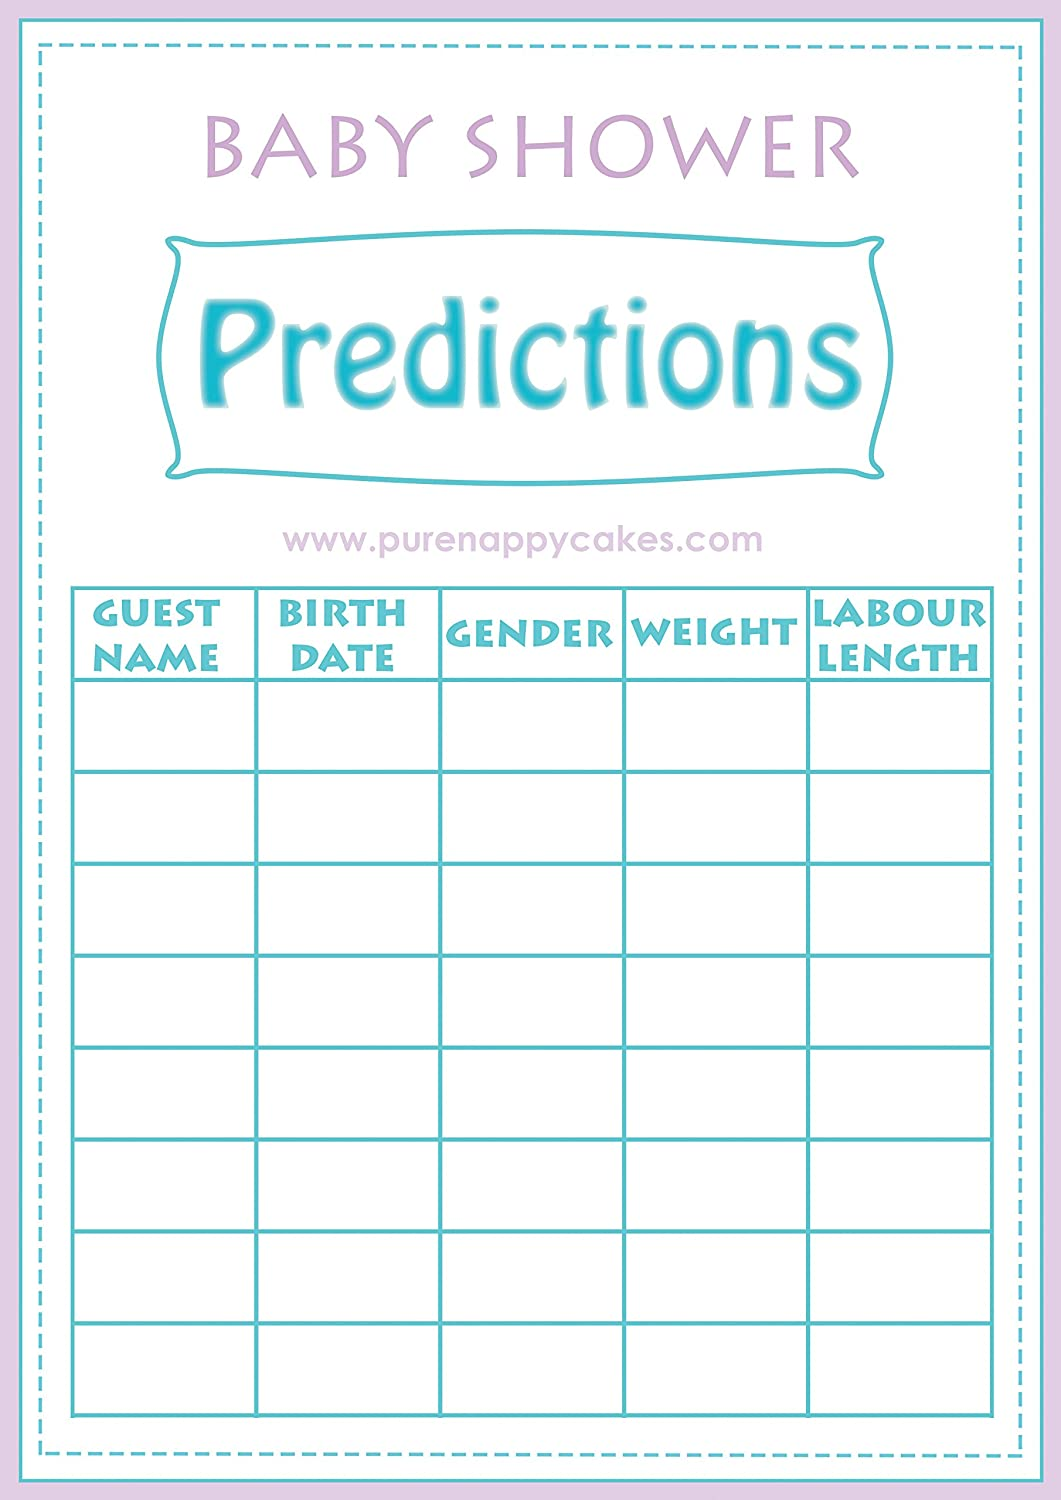 Exceptional Baby Shower Multiple Games Pack Including BINGO, Ice Breakers   Baby  Predictions U0026 Who Knows Mummy Best Game   Unisex   FREE DELIVERY:  Amazon.co.uk: Toys U0026 ...